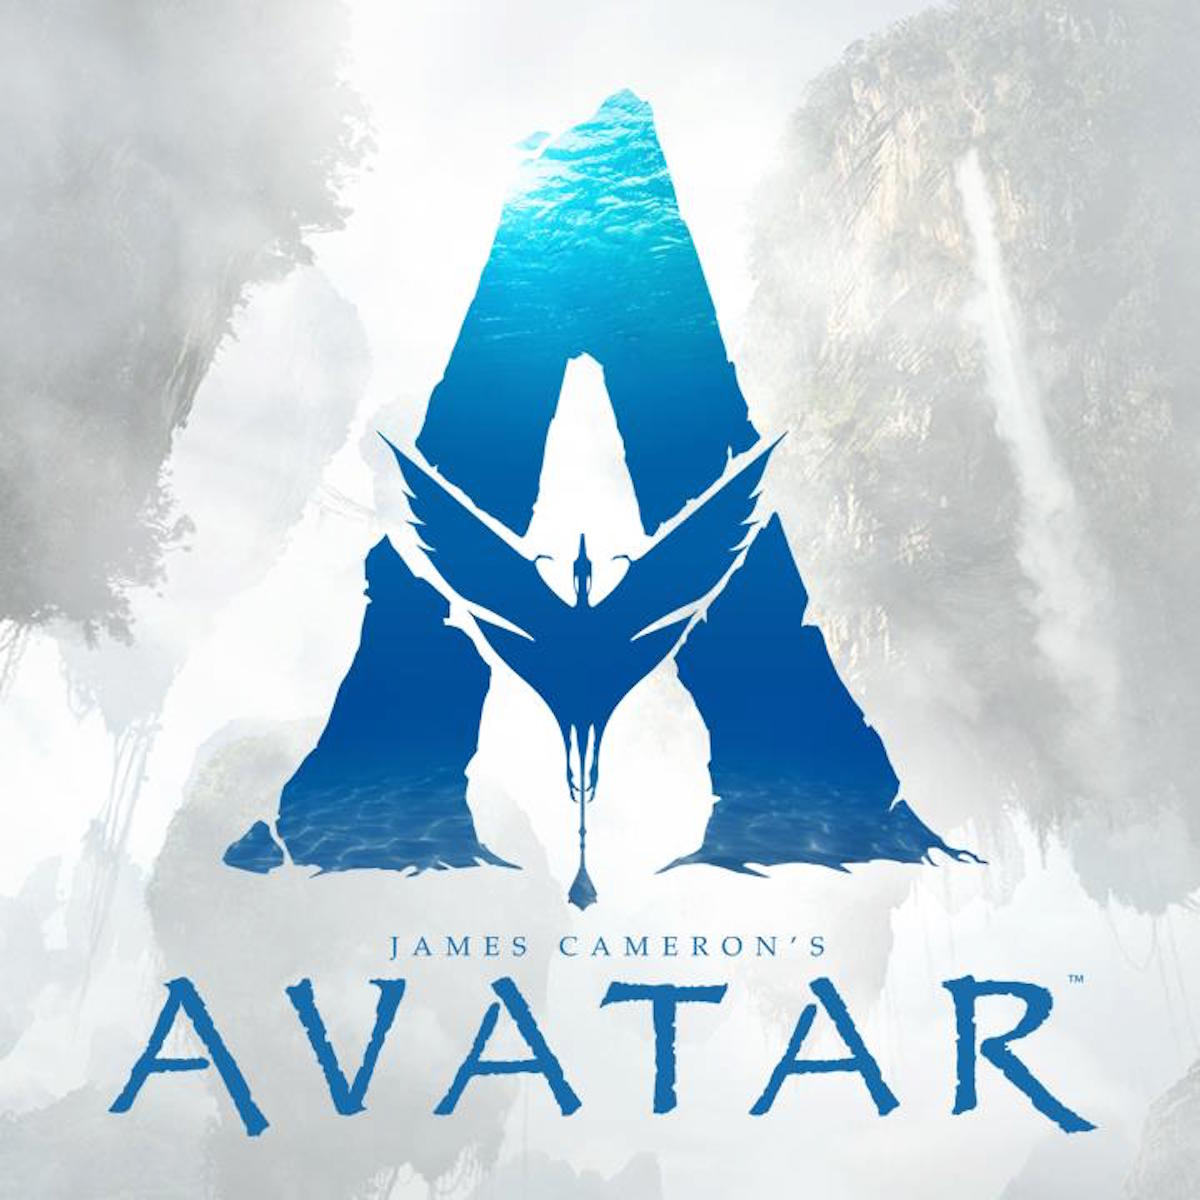 Avatar sequel logo